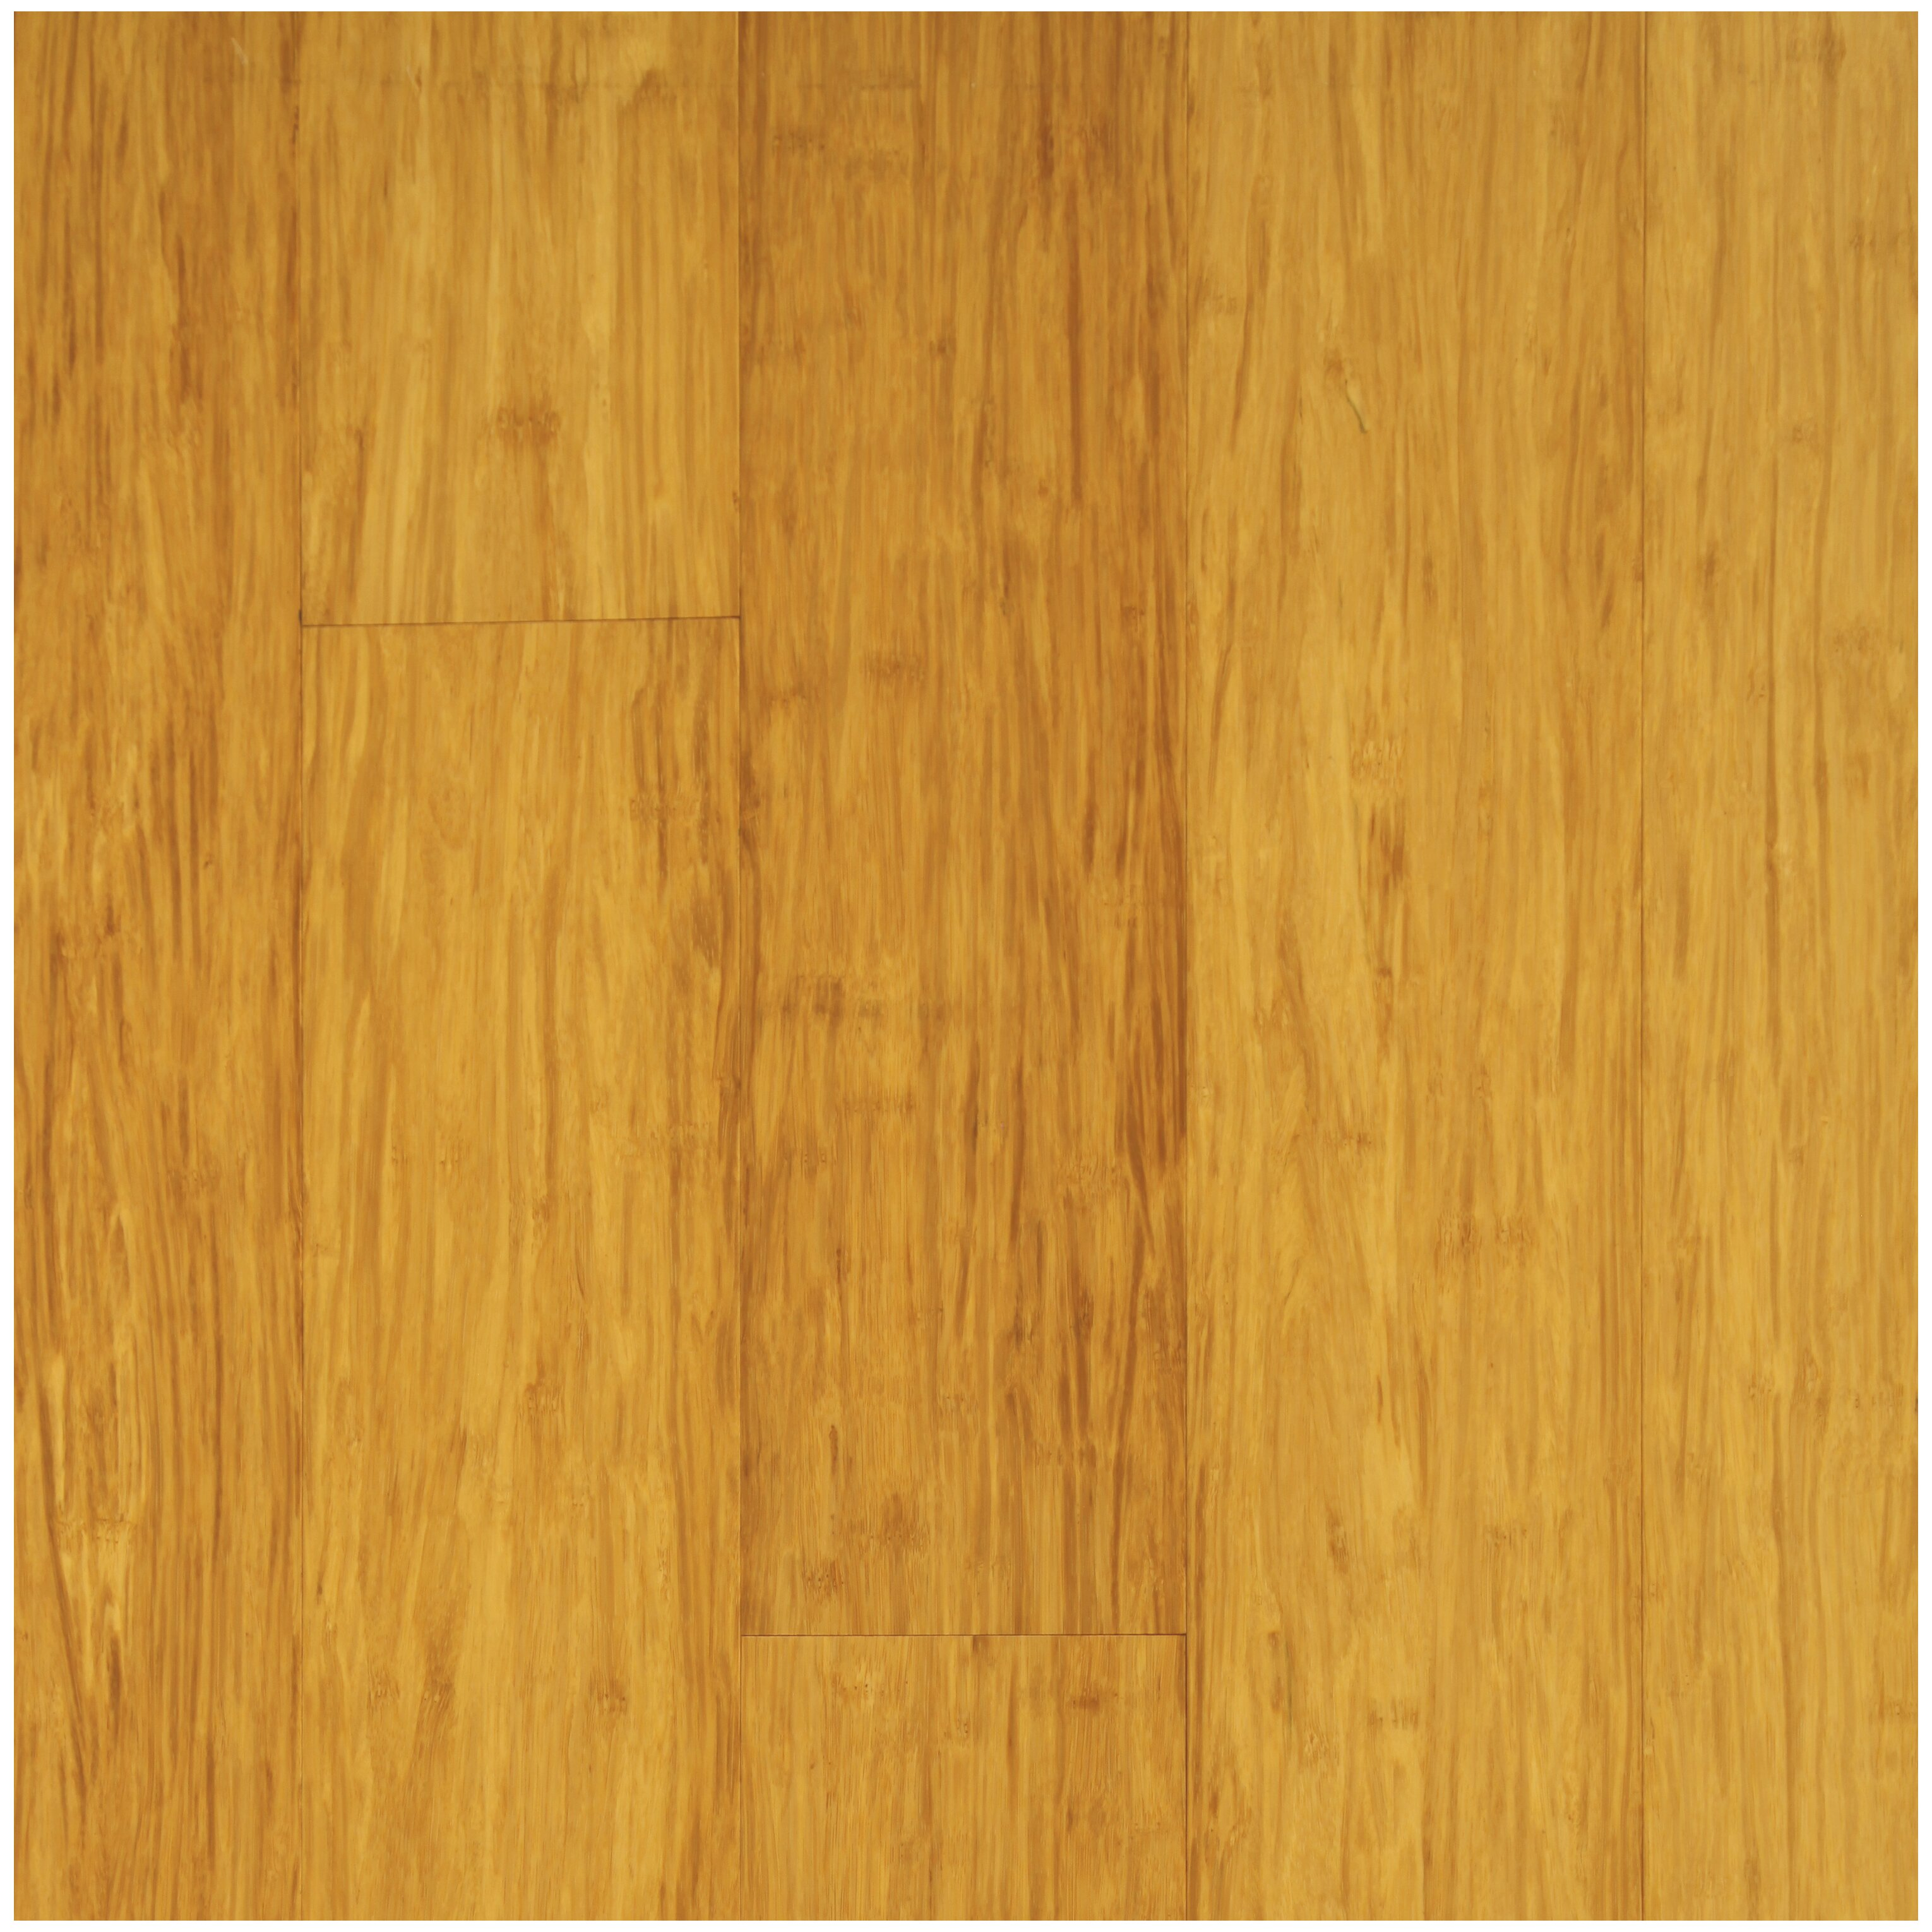 Engineered bamboo flooring reviews 46 images for Engineered bamboo flooring